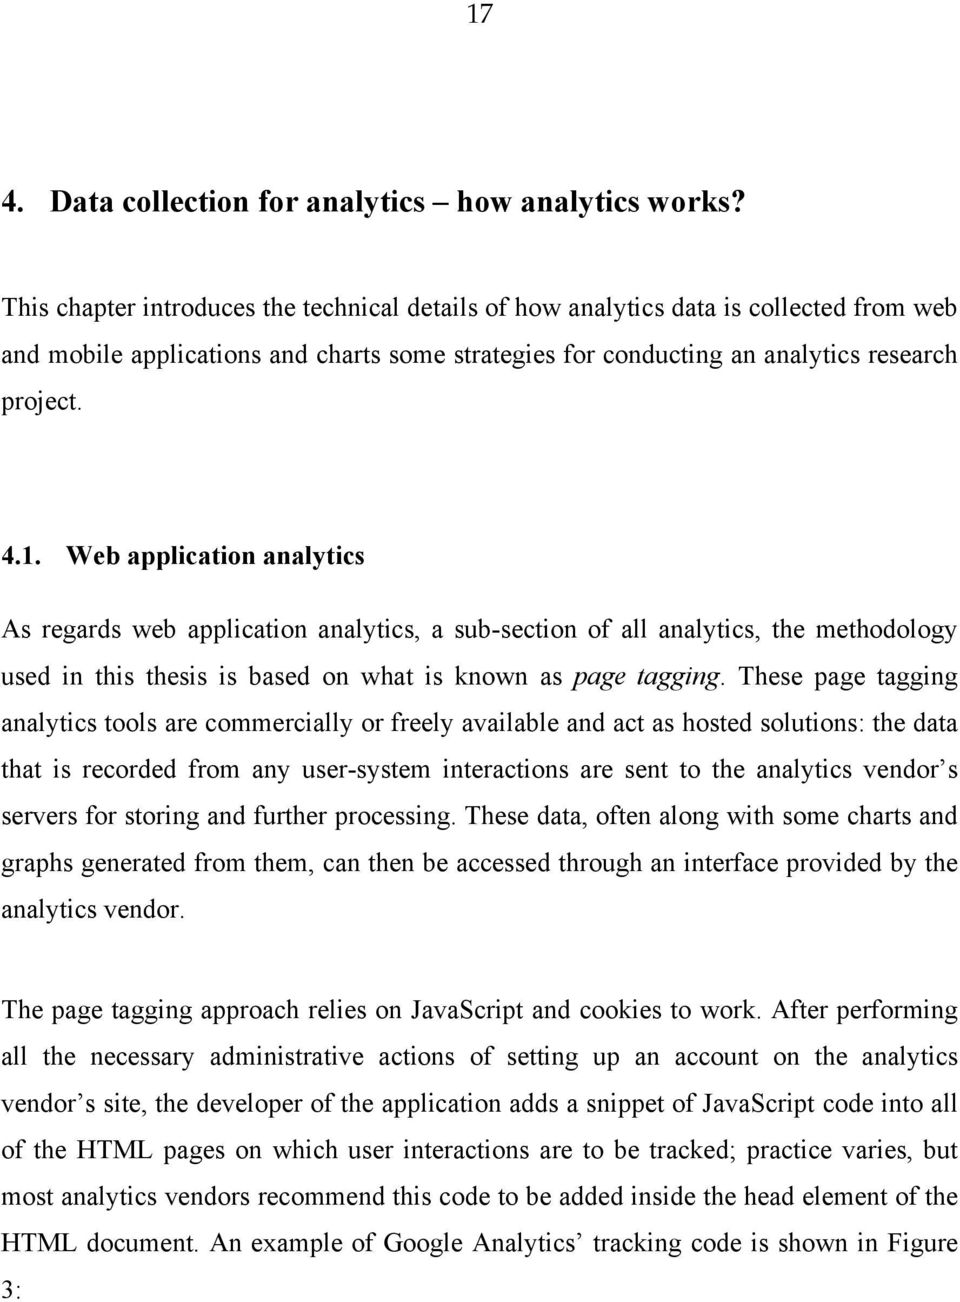 Web application analytics As regards web application analytics, a sub-section of all analytics, the methodology used in this thesis is based on what is known as page tagging.